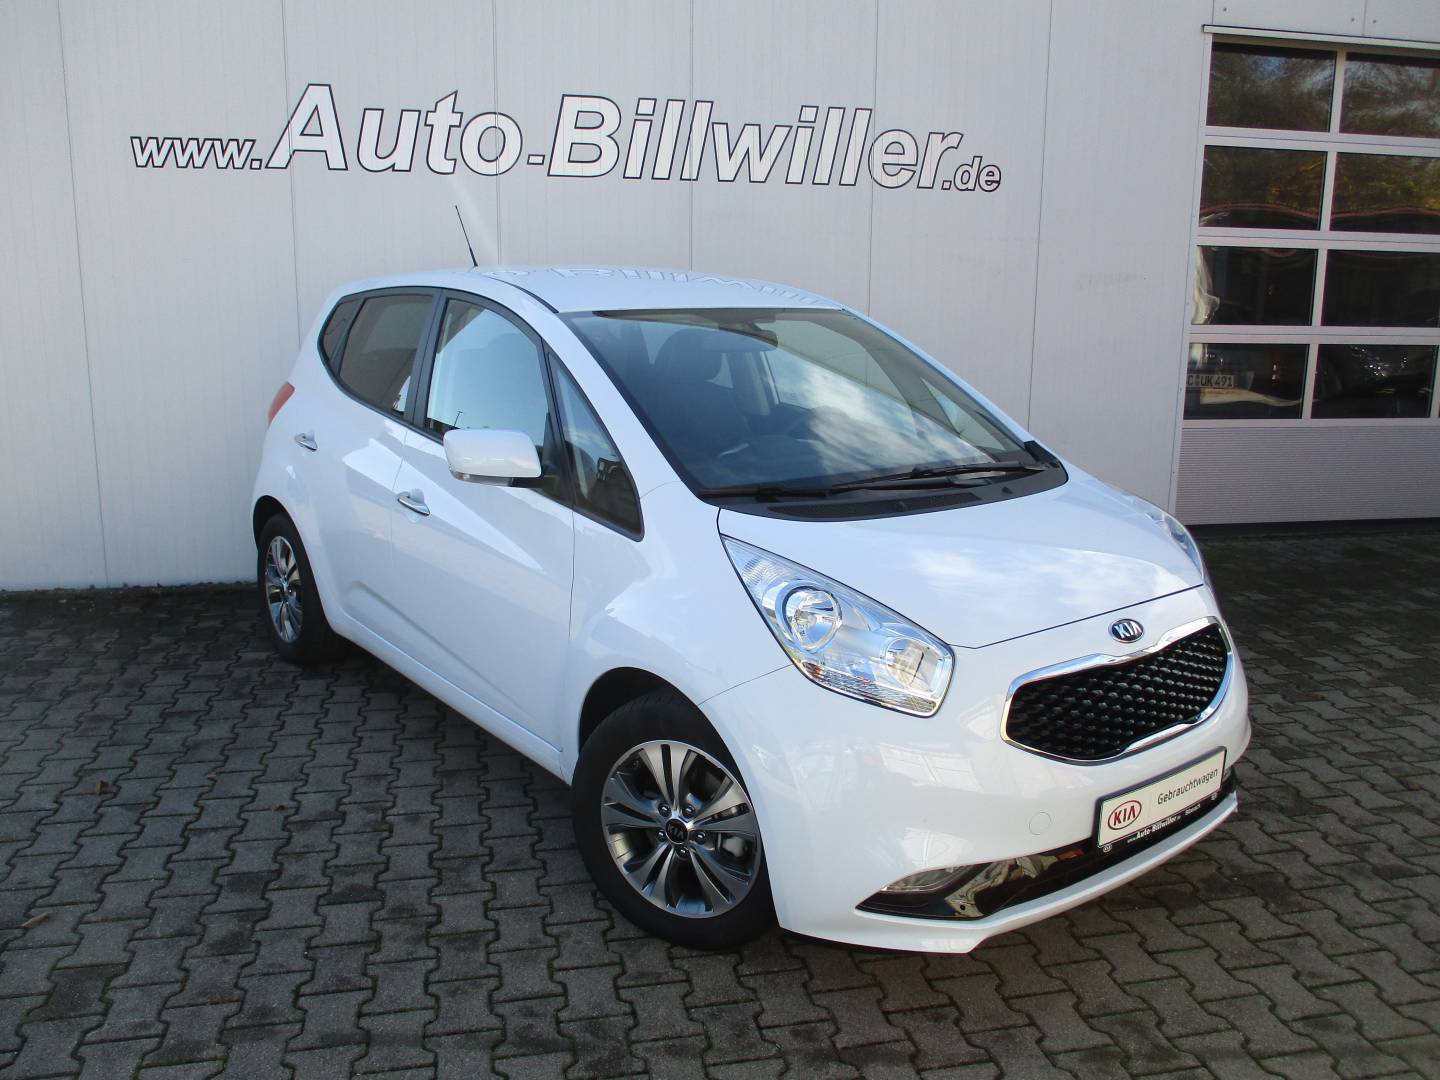 KIA Venga 1.6 (125 PS) ISG Dream-Team Navi